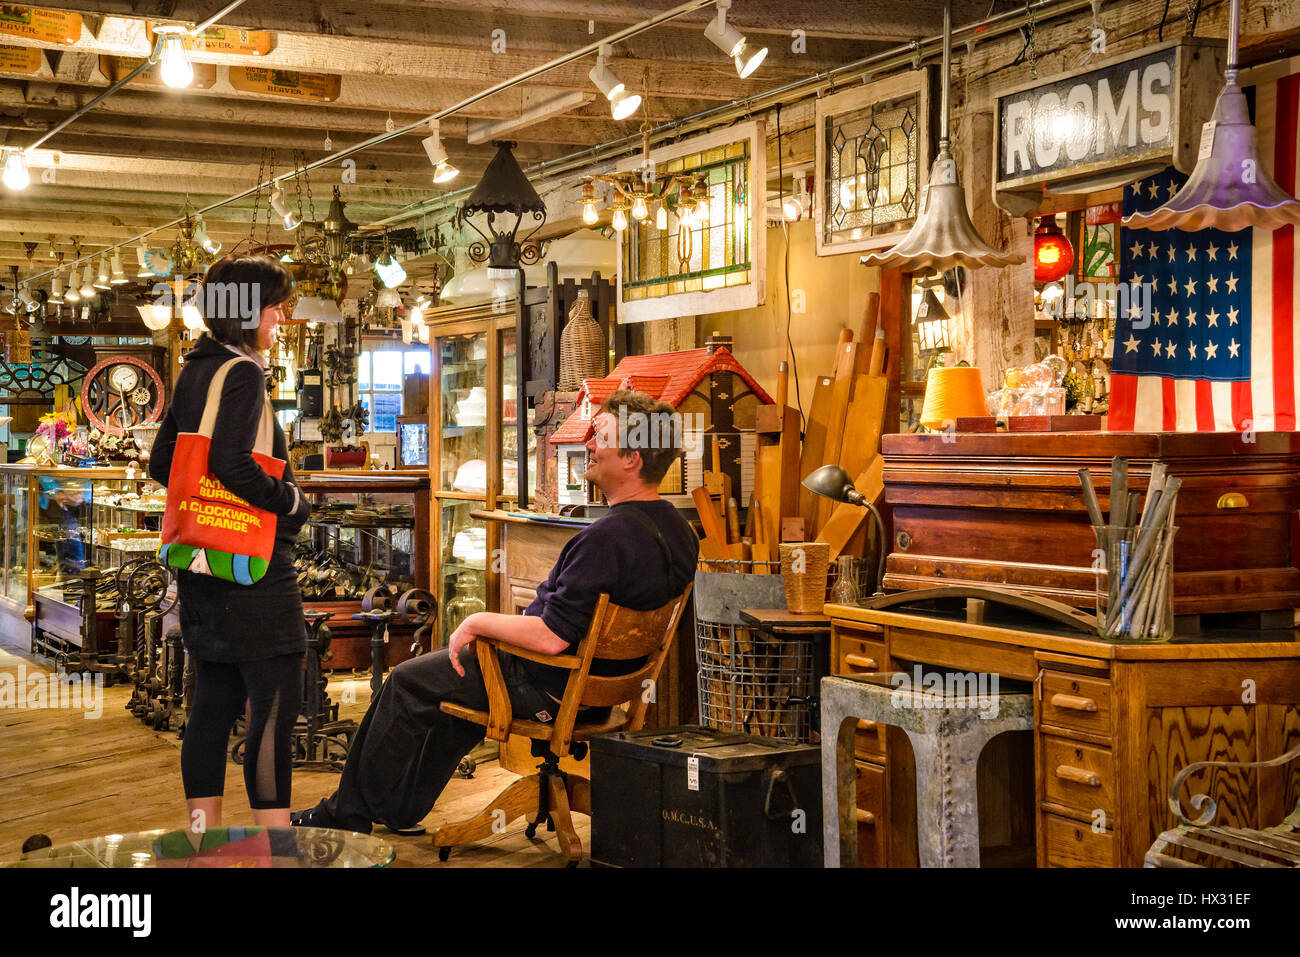 Couple shopping at Aurora Mills Architectural Salvage in Aurora, Oregon. - Stock Image